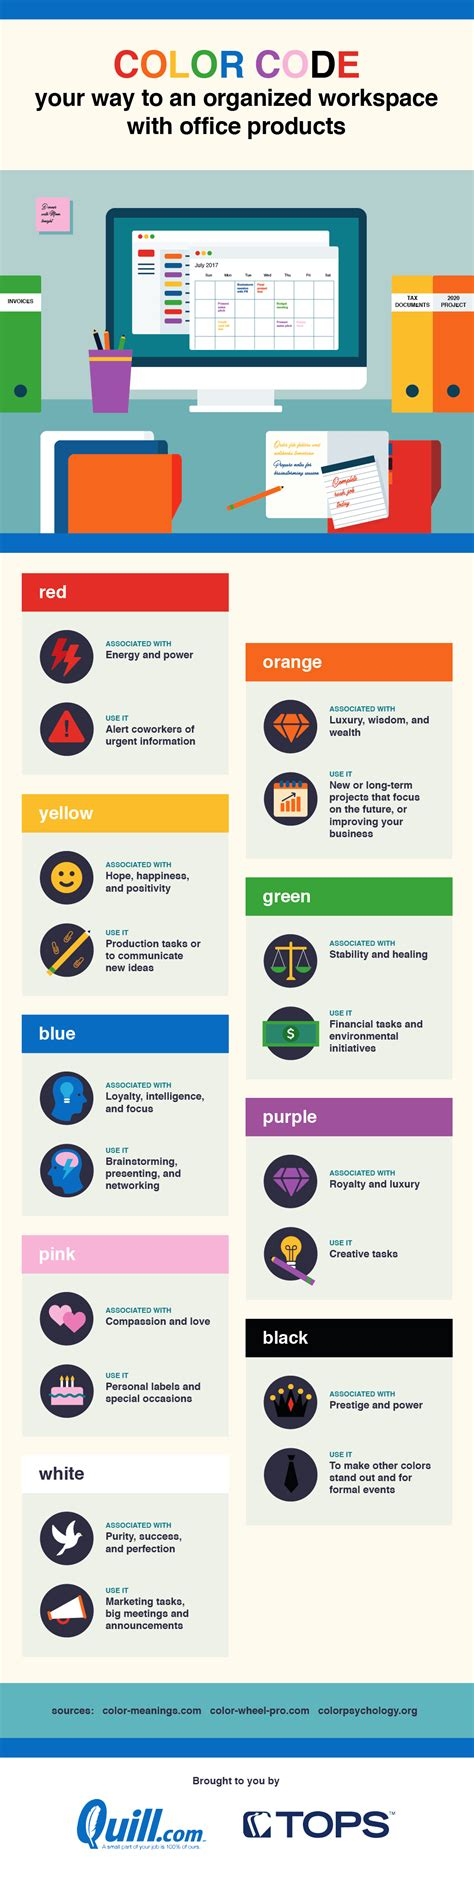 color code your way to an organized workspace with office products infographic visualistan